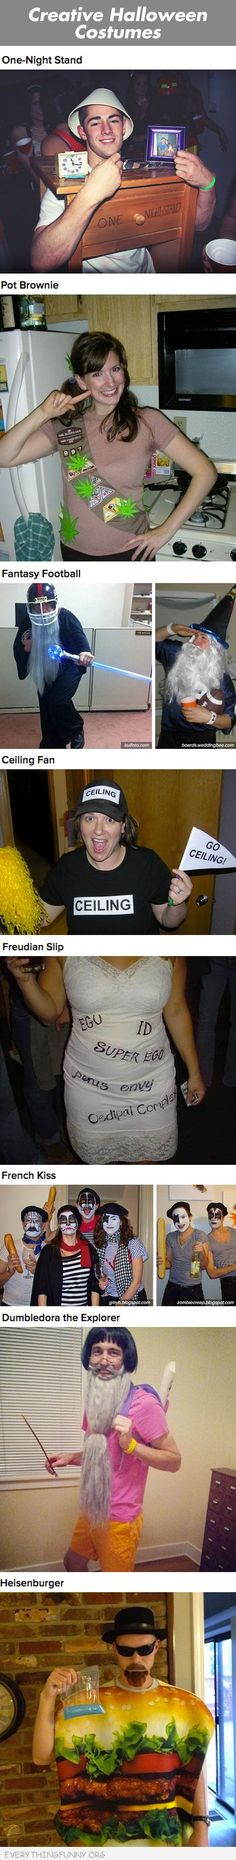 funny caption creative halloween costumes